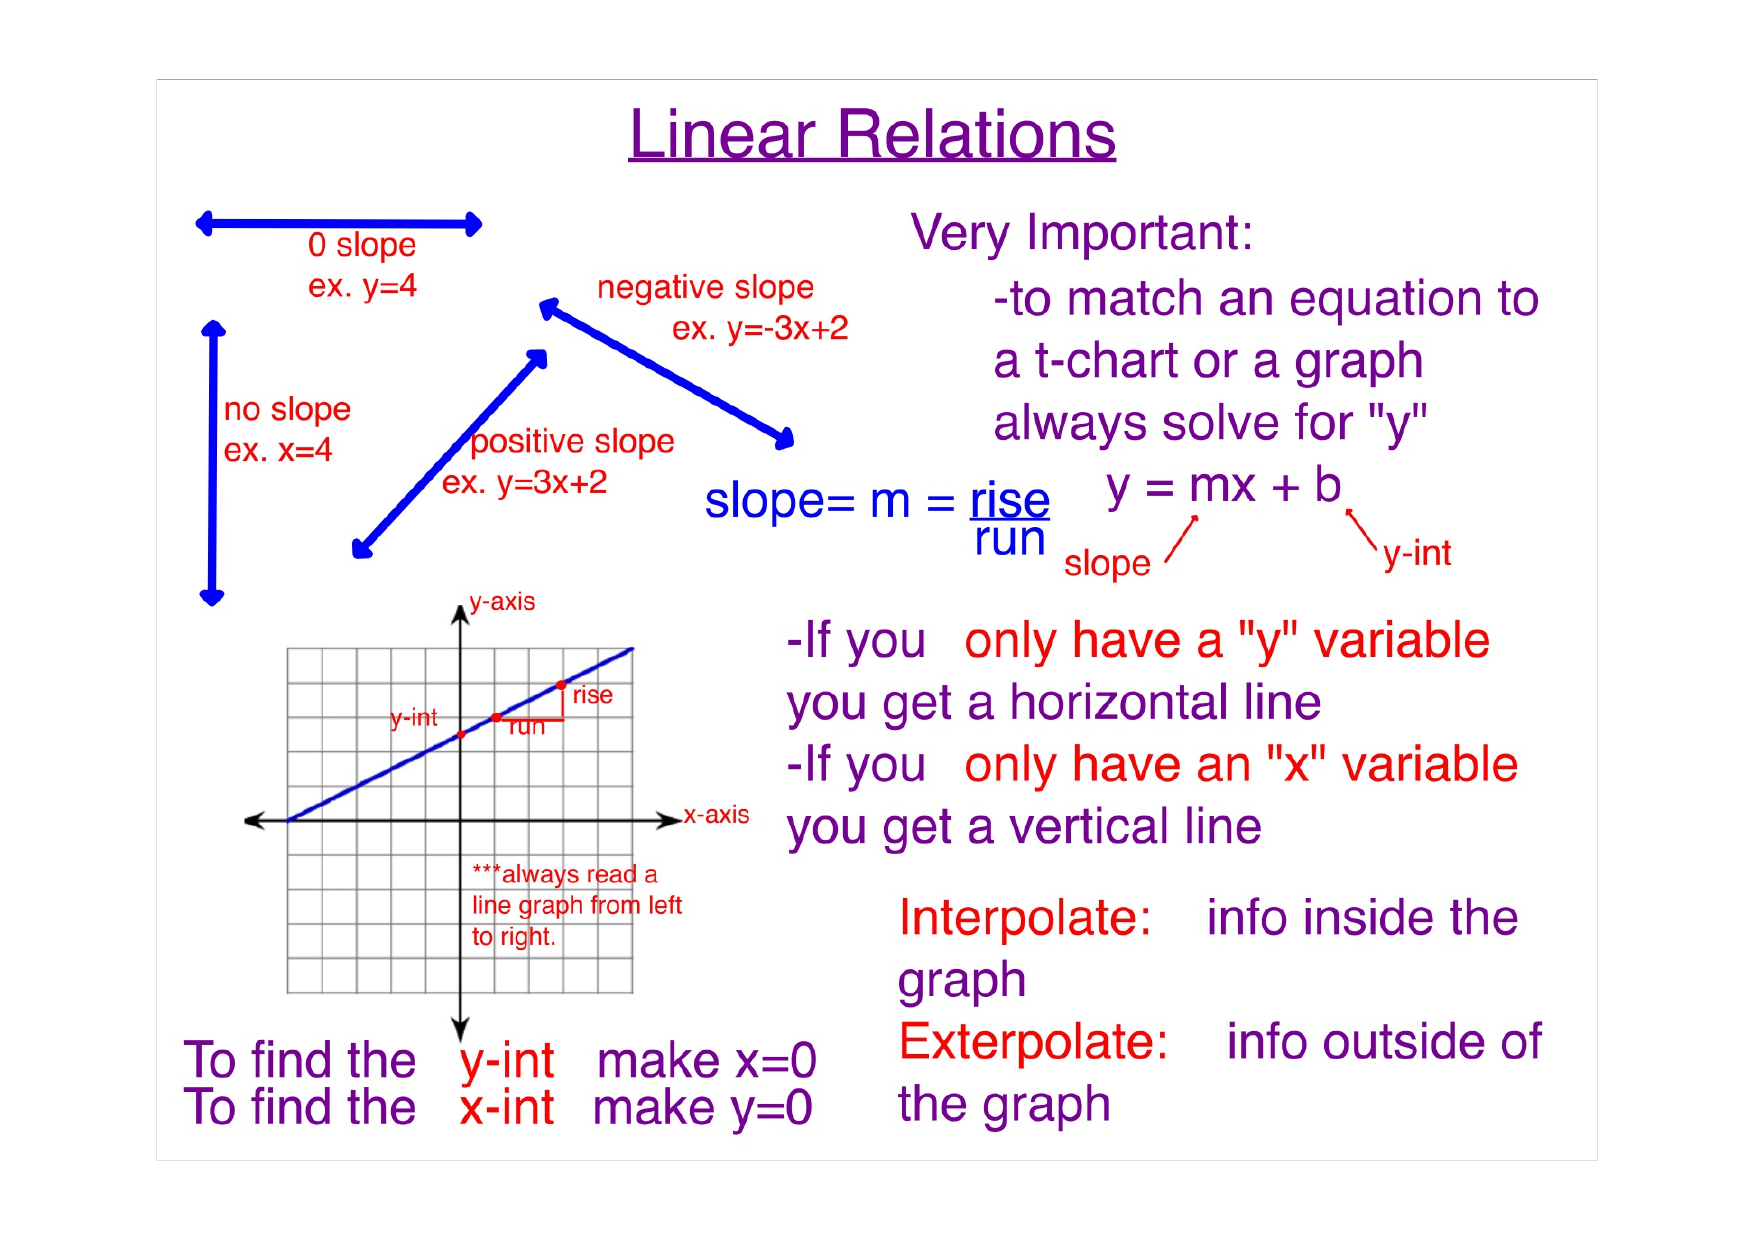 Linear Relations Posters Resource Preview